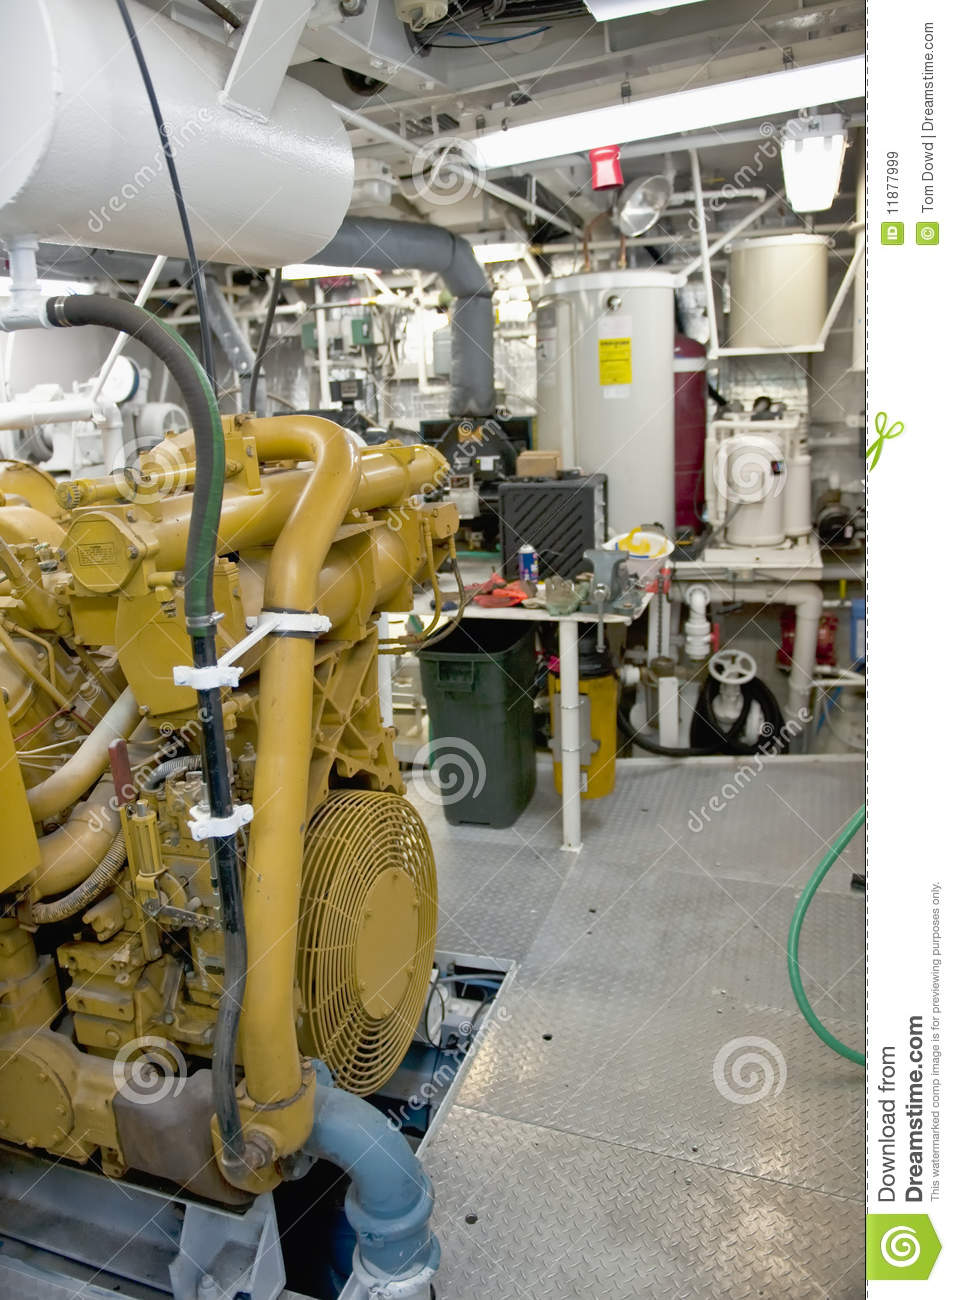 Spaceship Engine Room: Machinery In Ship Engine Room Stock Image